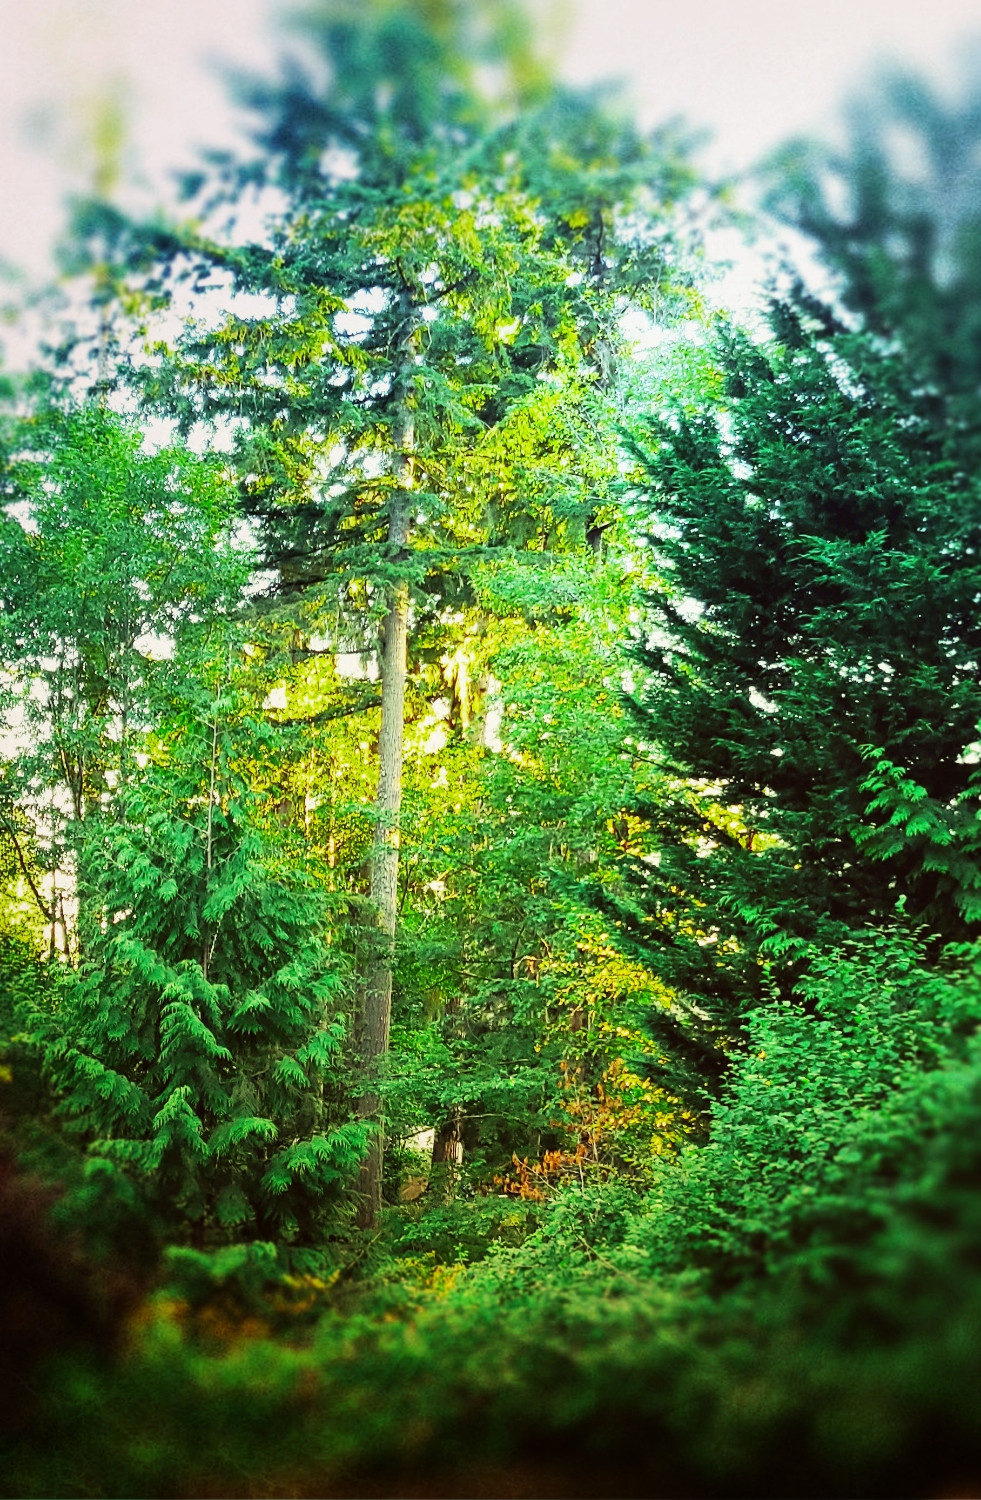 Old grown evergreen trees in mountainside forest.